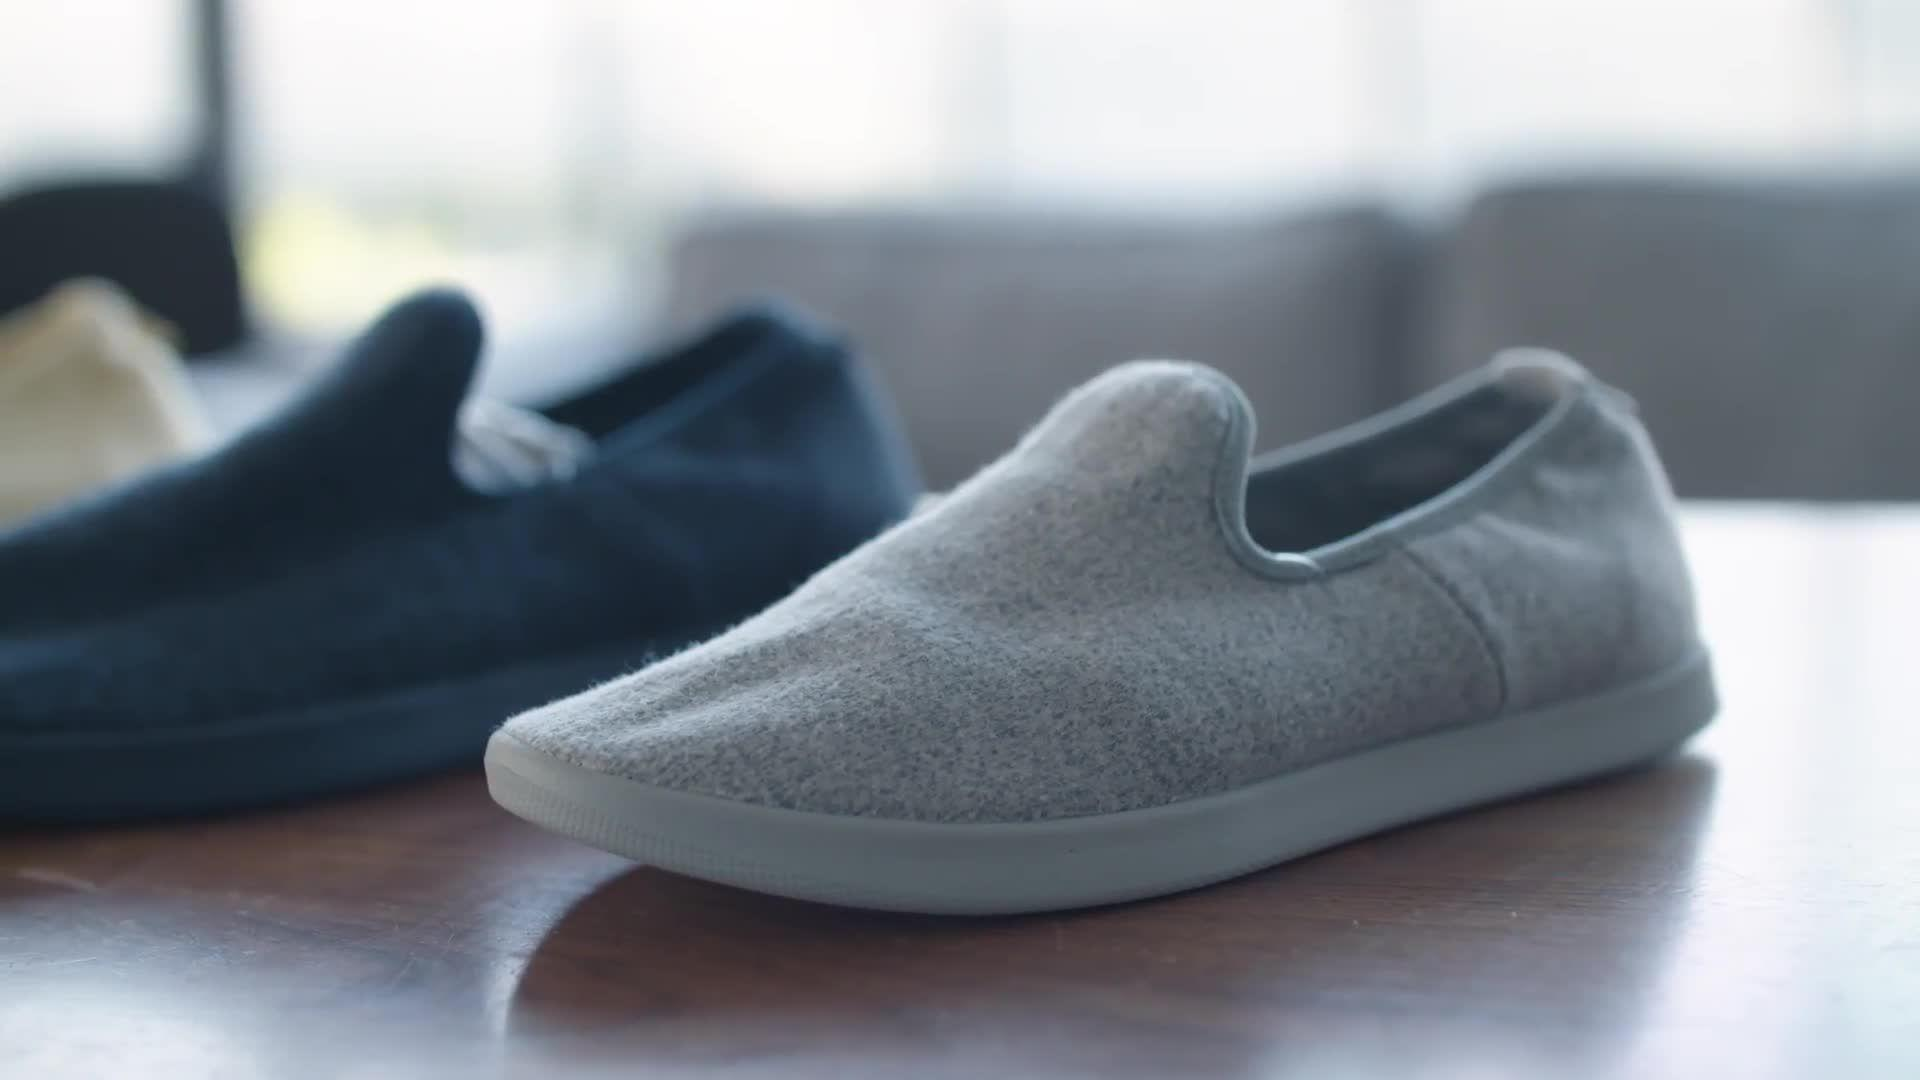 Silicon Valley's Favorite Shoe Company Has Some New Kicks